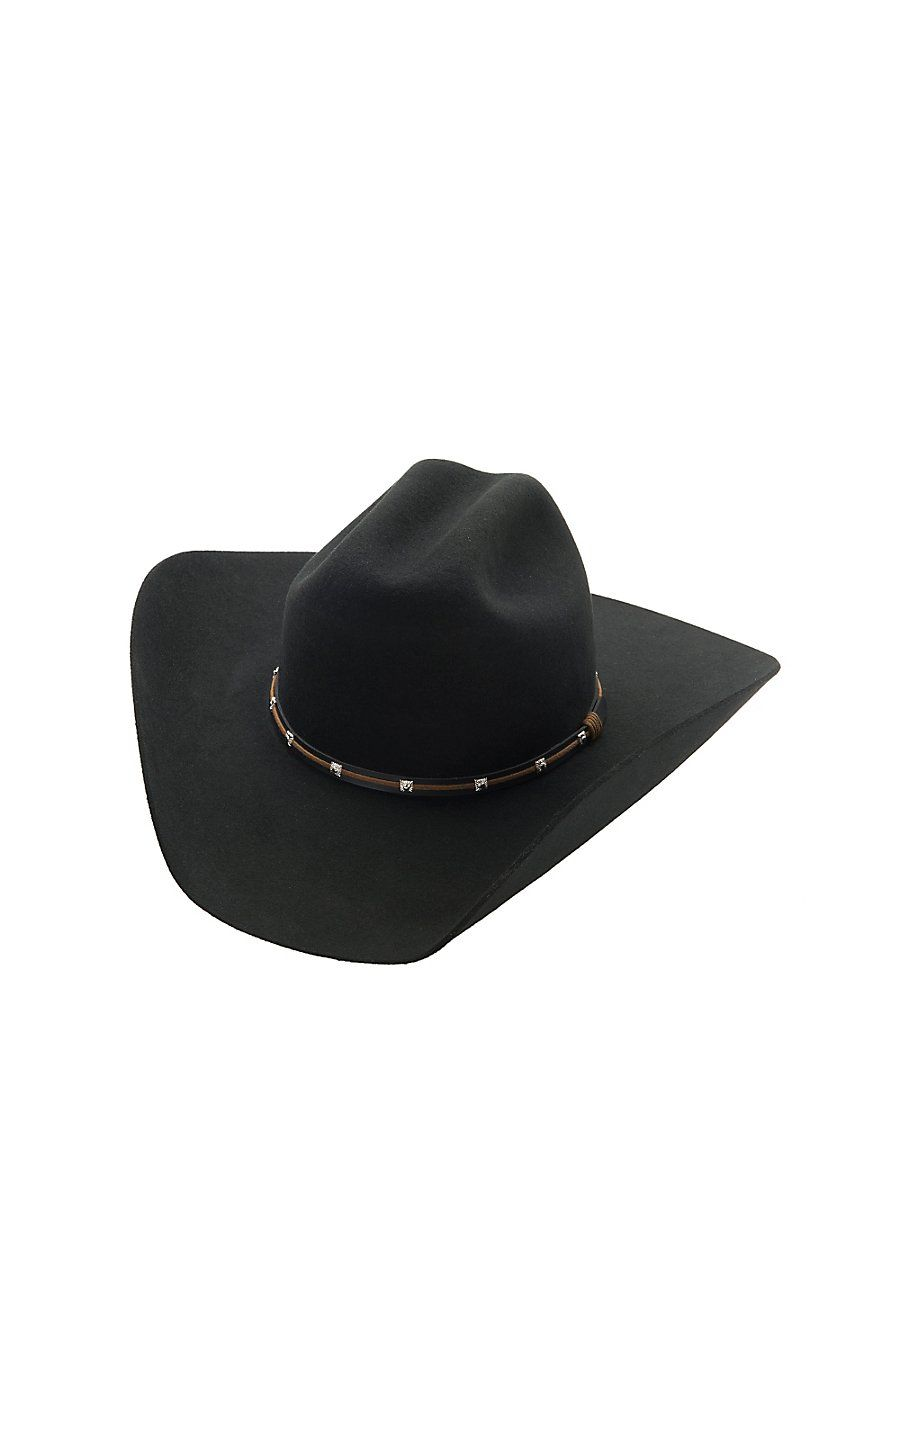 cb138c9c231344 Rodeo King® 3X Low Rodeo Black Felt Cowboy Hat- LRD3BK1600 | Cowboy ...